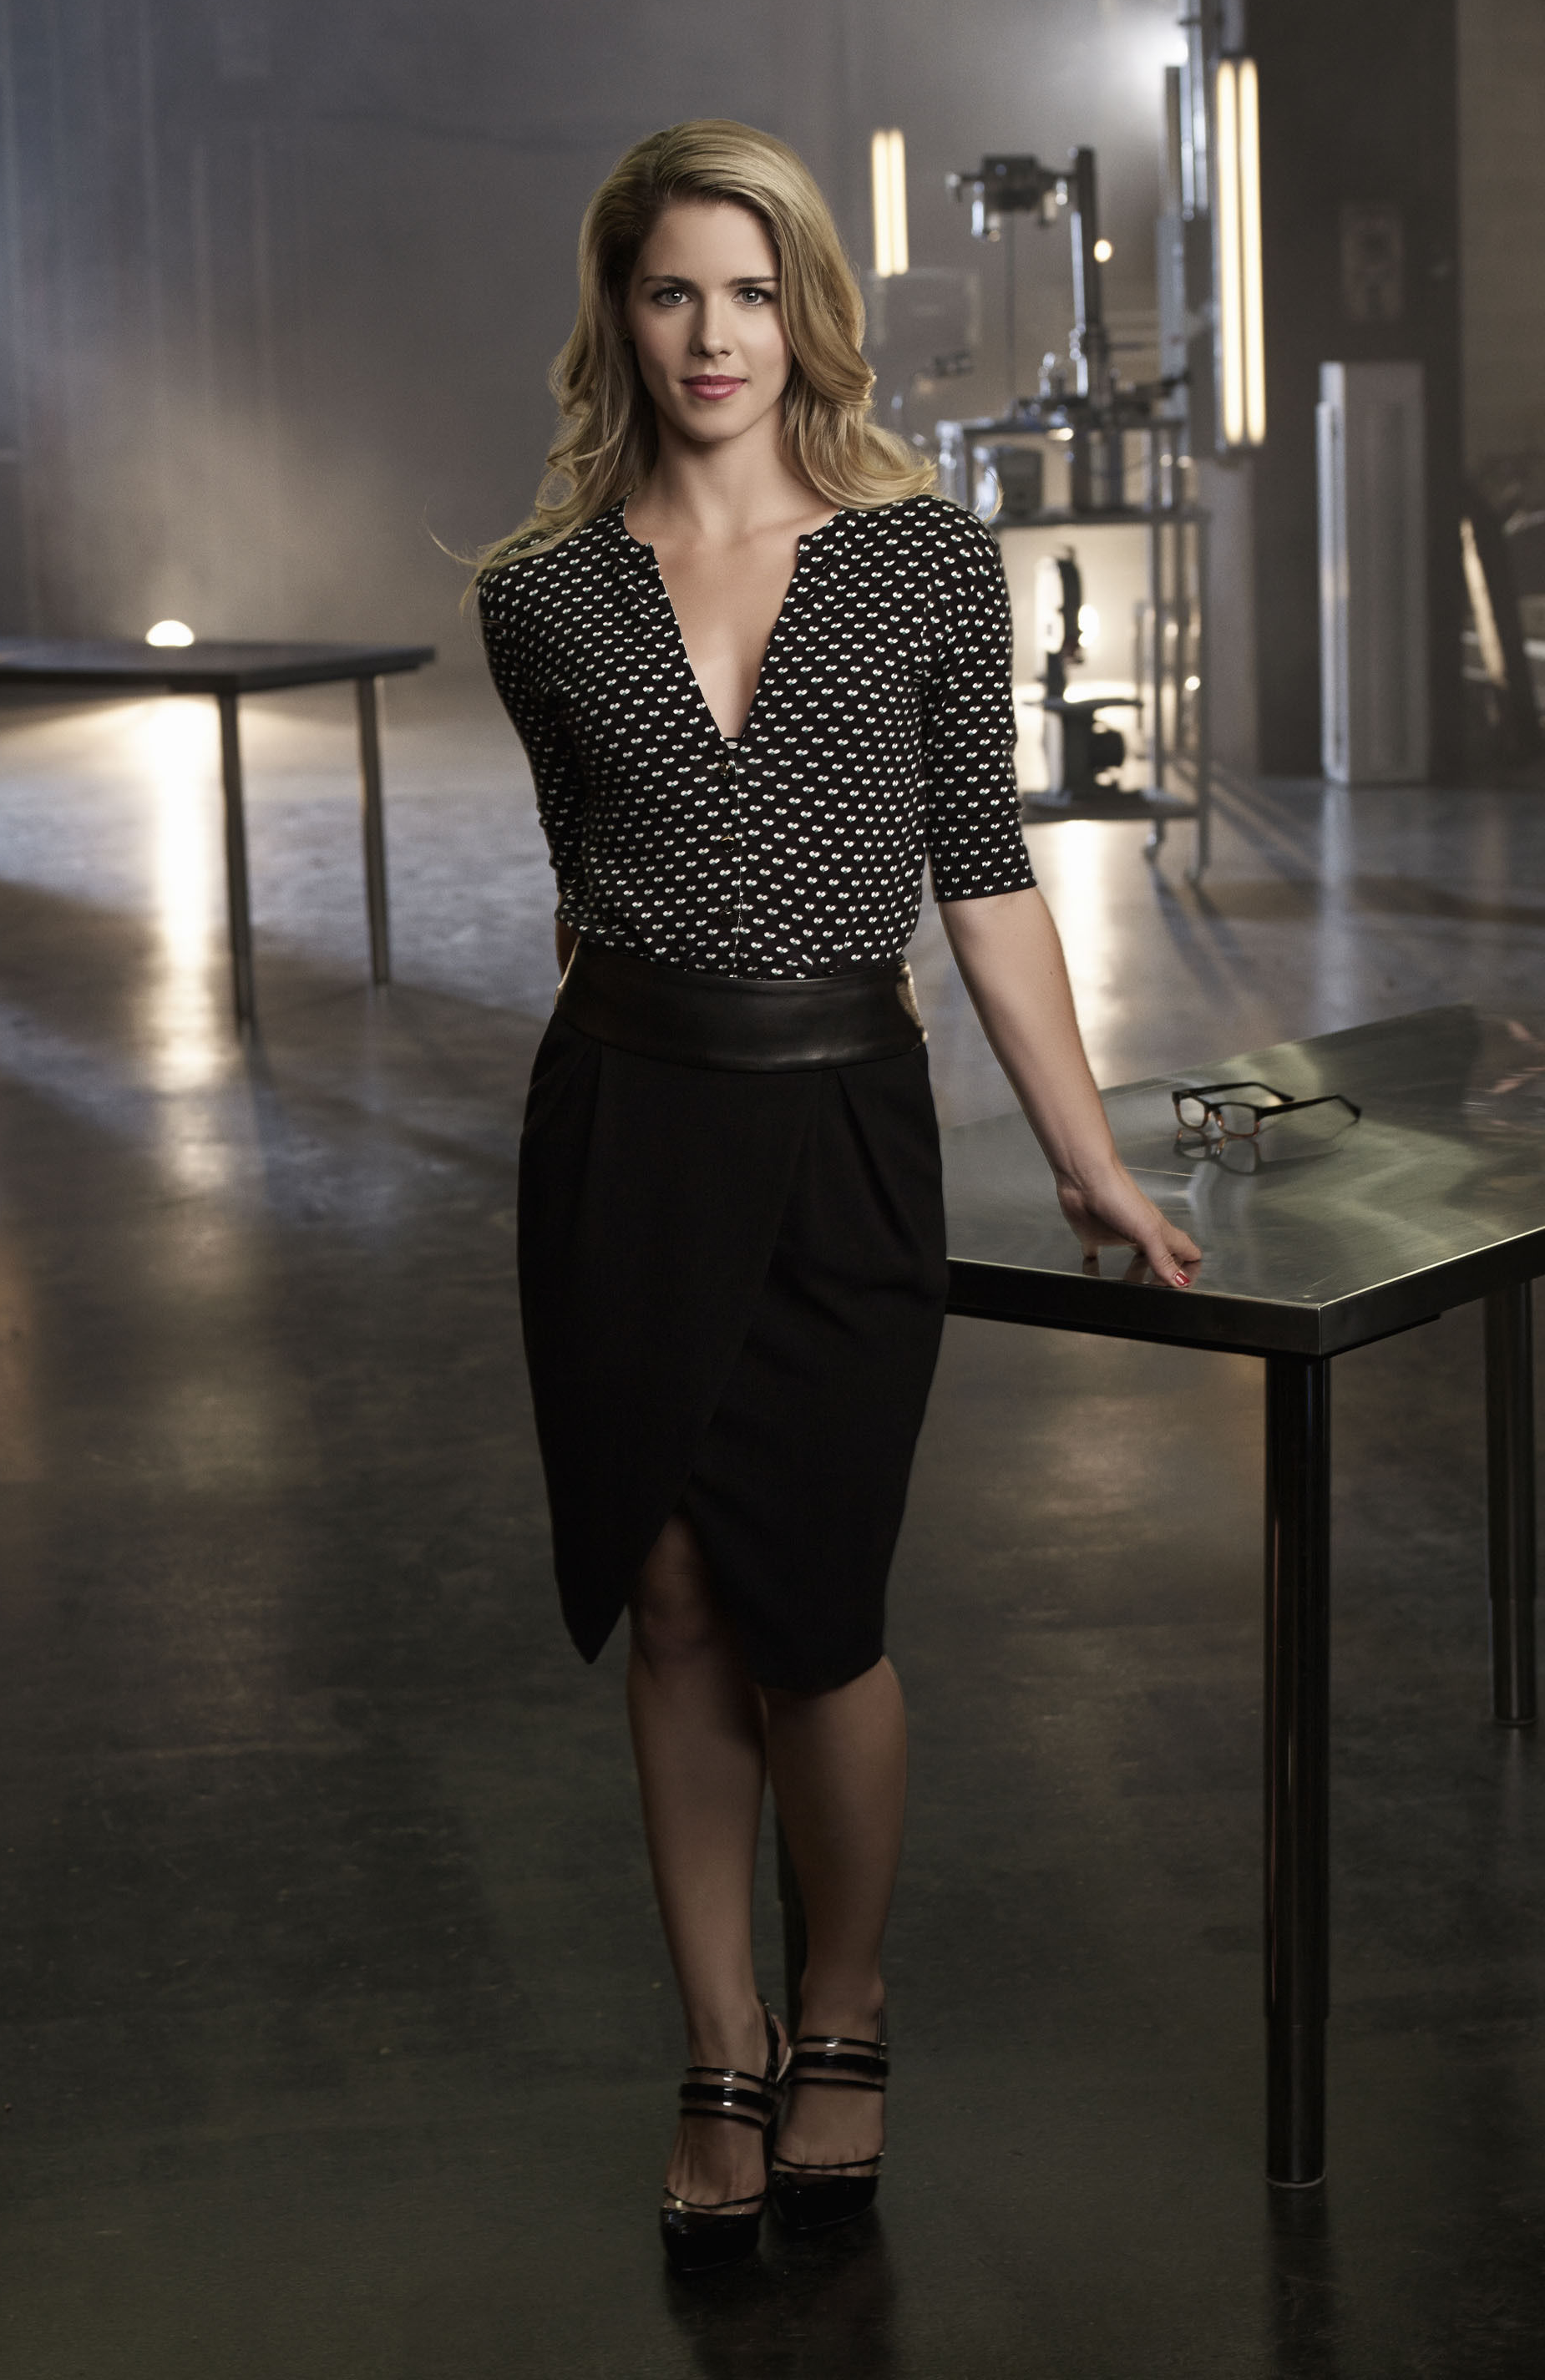 Felicity Smoak (Arrowverse)